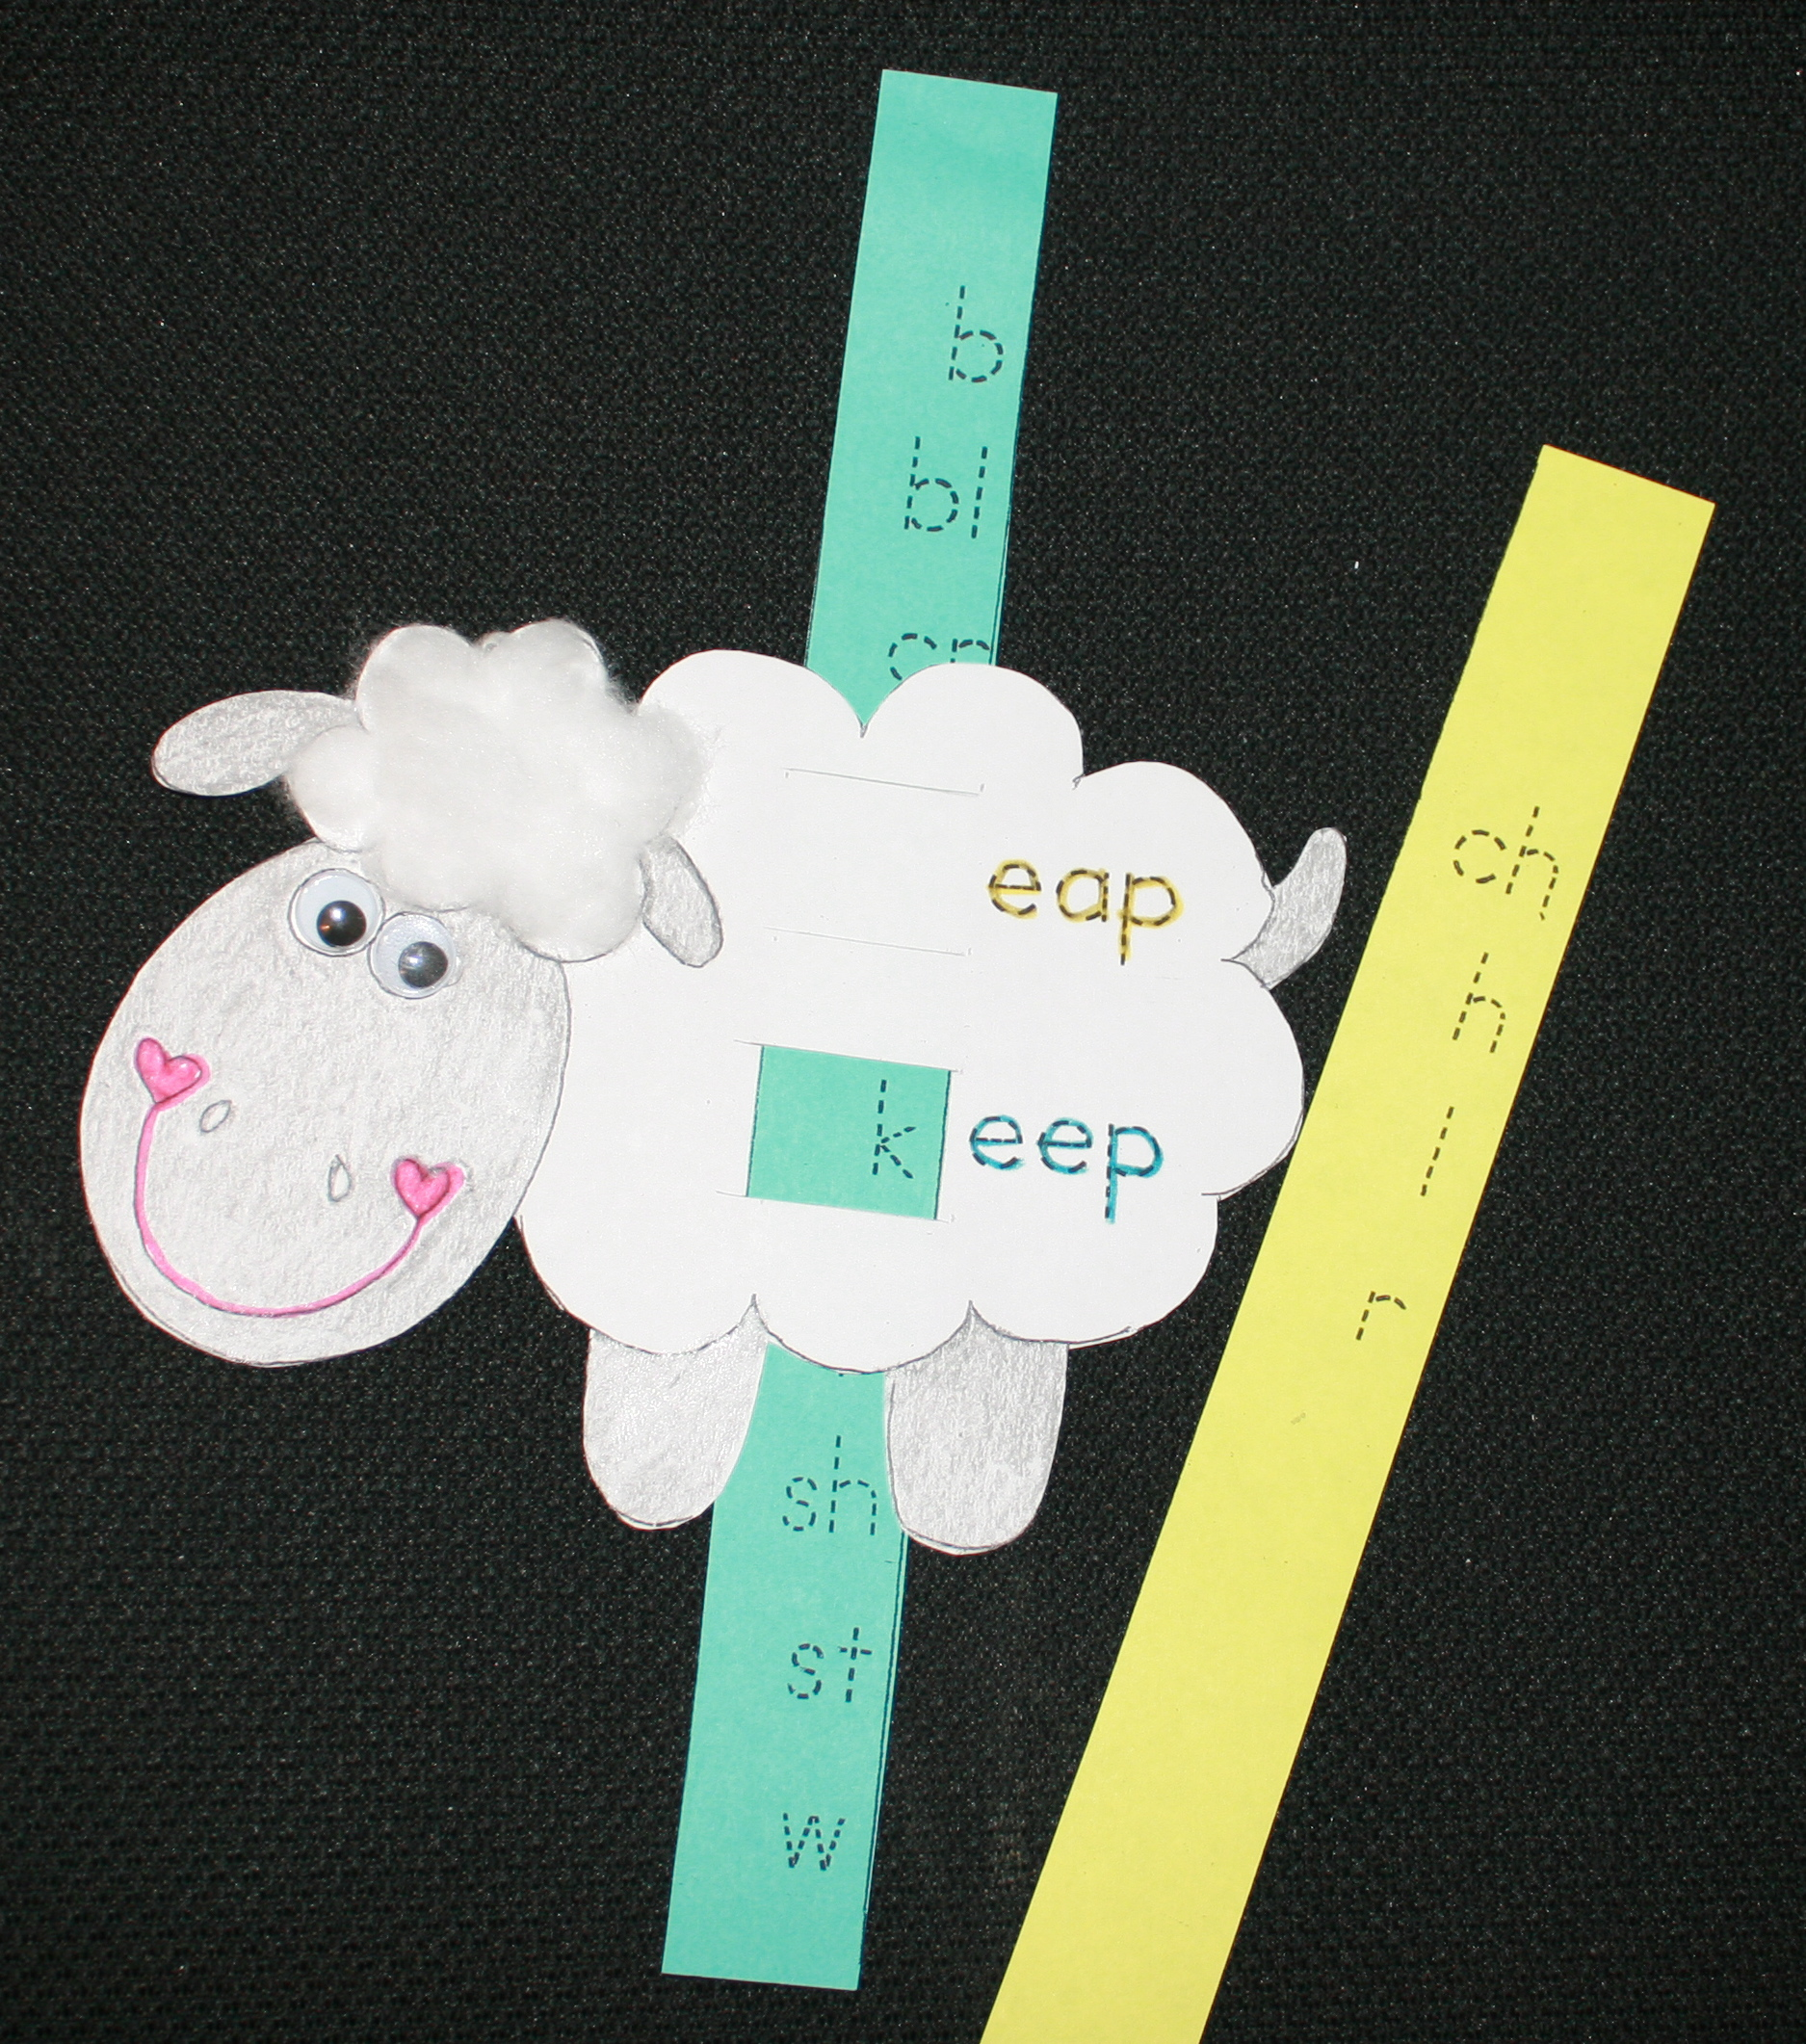 sheep slider, sheep activities, lion and lamb activities, march activities, springrime activities, sheep crafts, lamb crafts, nursery rhyme crafts, nursery rhyme activities, sheep booklet, lion booklet, march writing prompts, march class books, writing class books, sheep activities for preschool kindergarten and first grade, lion activities for preschool kindergarten and first grade, lion mask, sheep mask, lion puppet, sheep puppet,